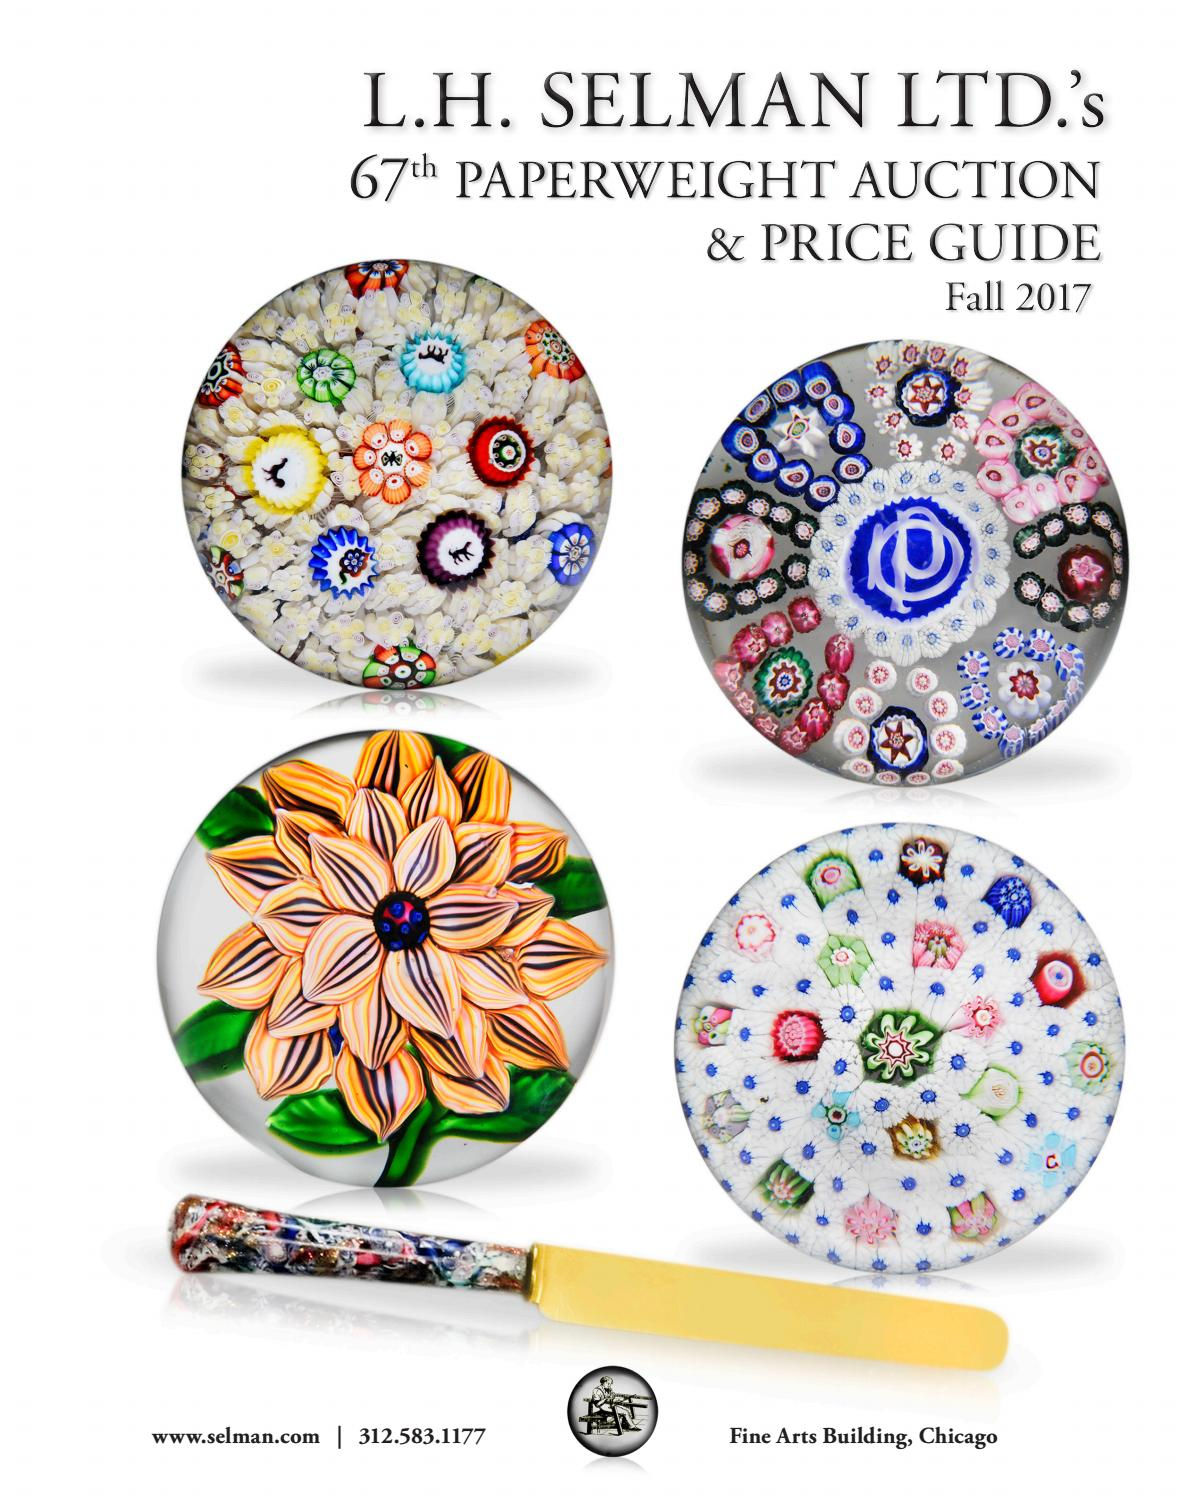 Lh Selman Ltds 67th Paperweight Auction Price Guide Fall 2017